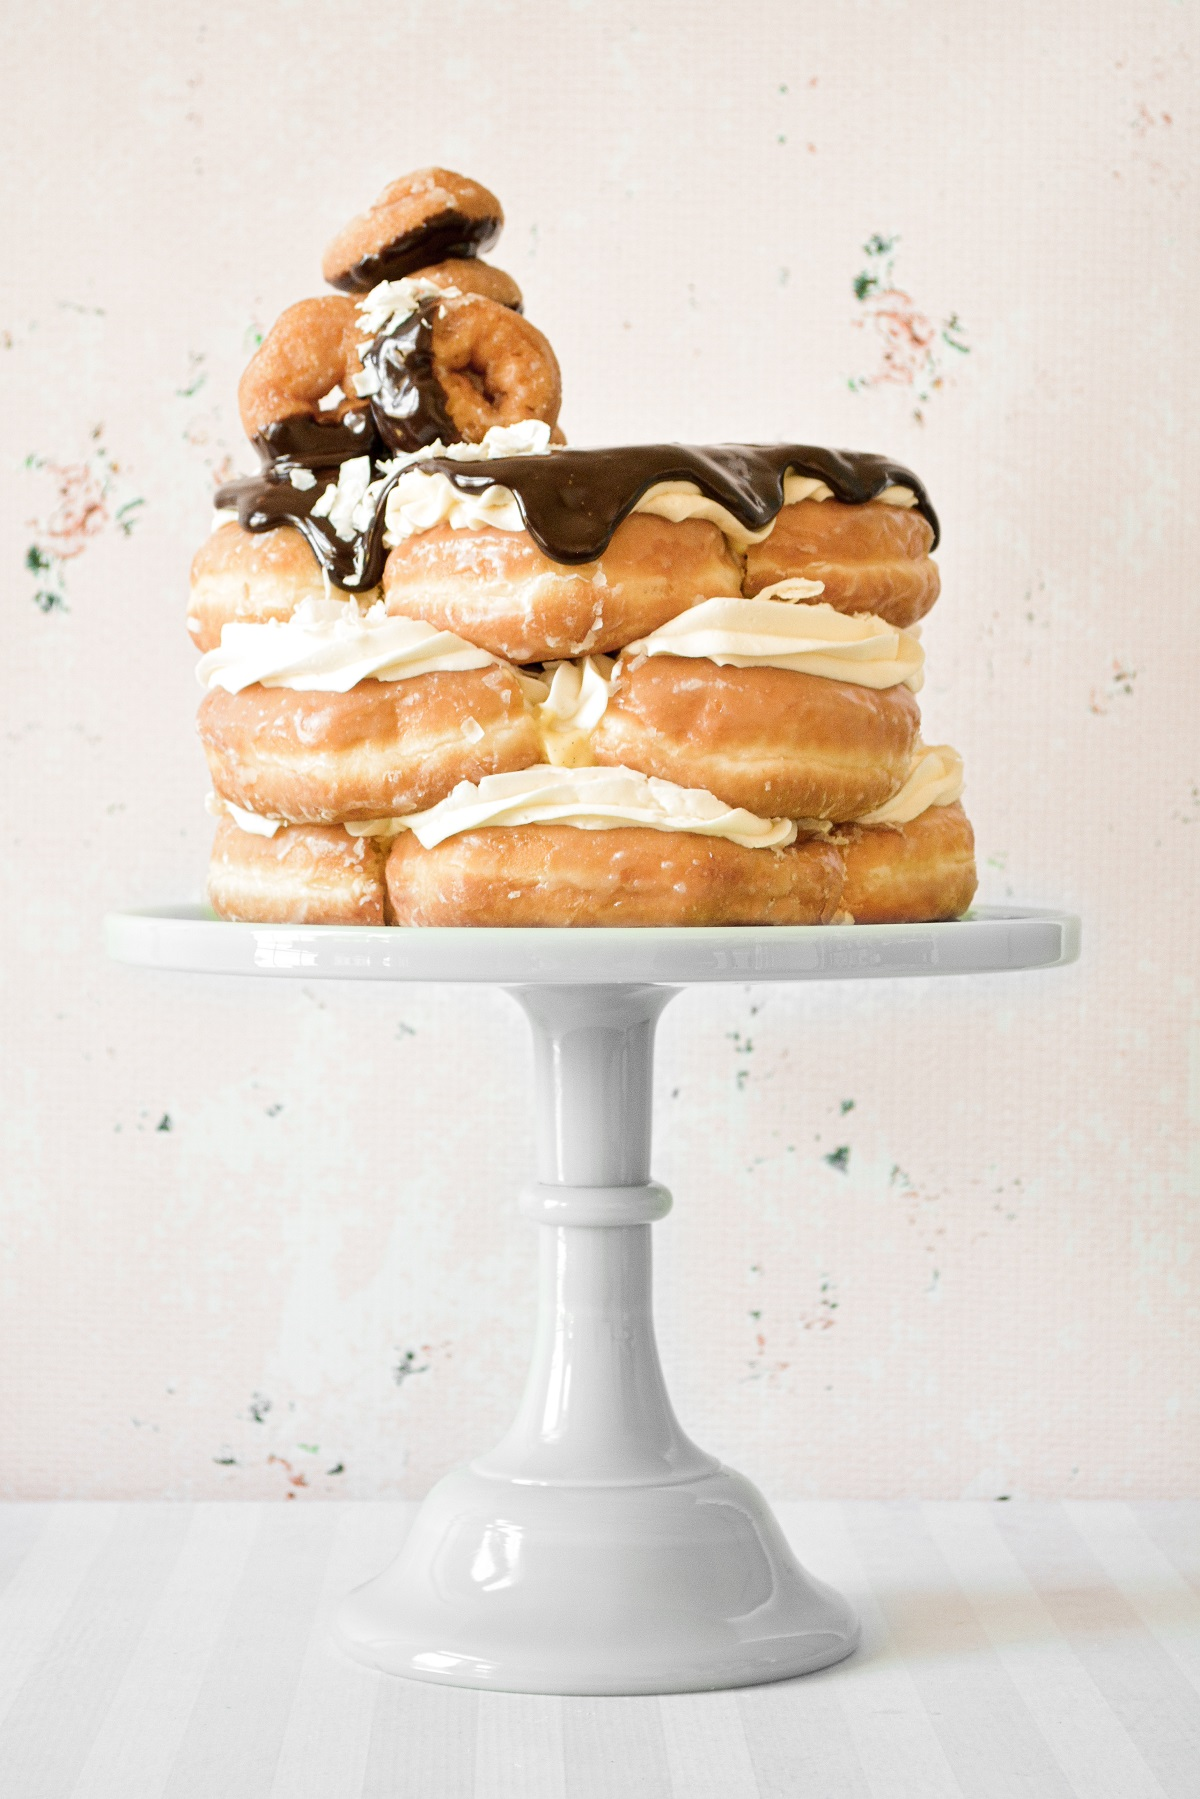 Doughnut cake, filled with custard and buttercream, and topped with chocolate ganache.